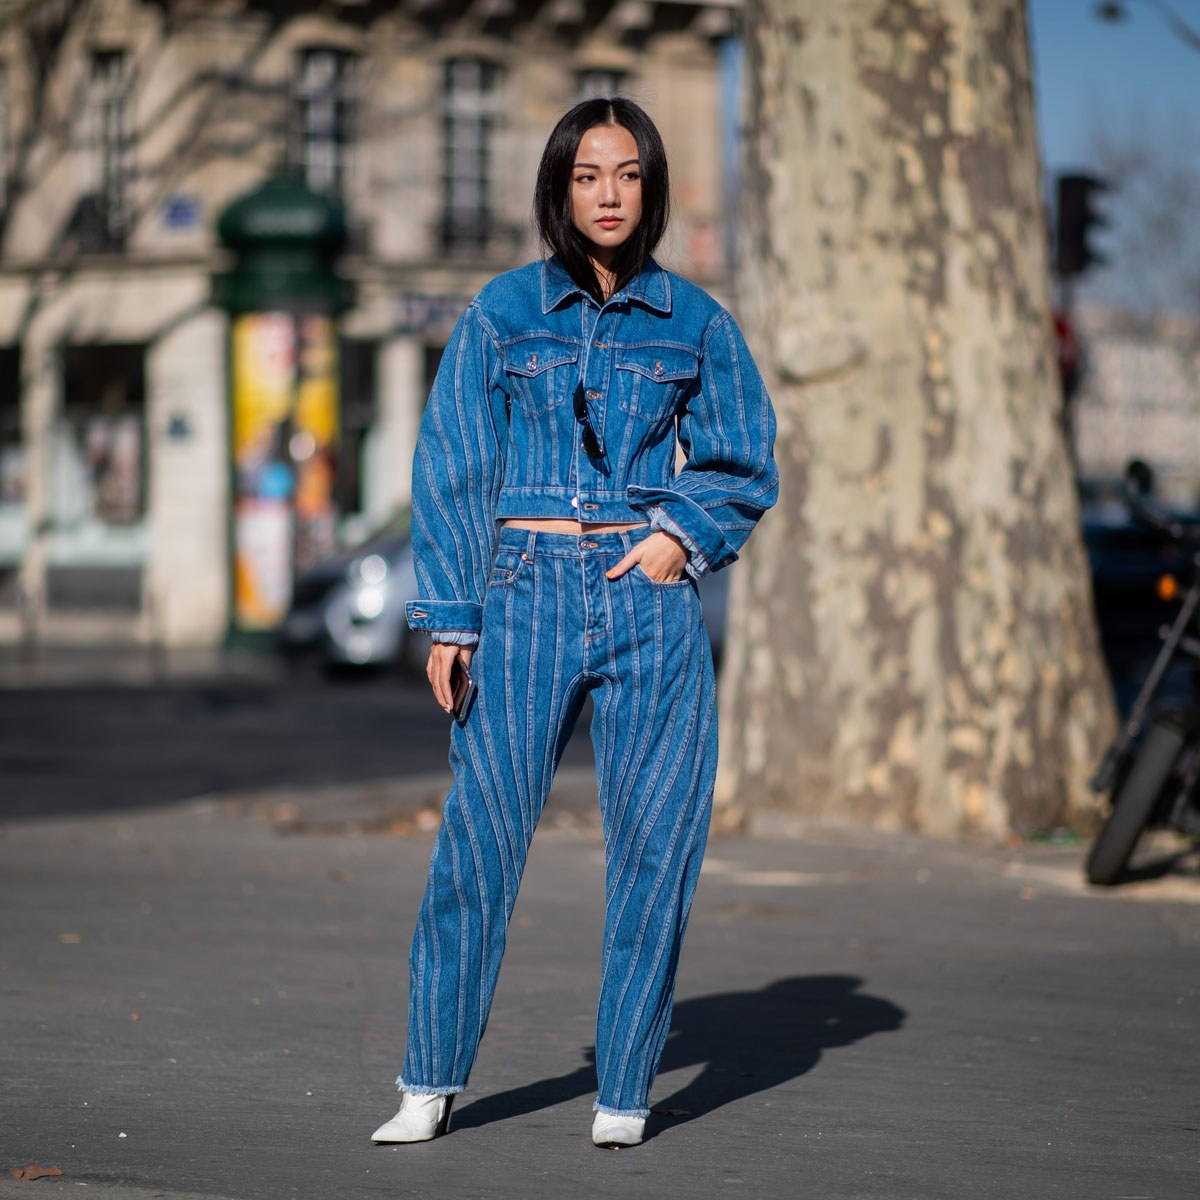 85ef186abd64 The 10 Best Pairs of Jeans for Women in 2019   Glamour